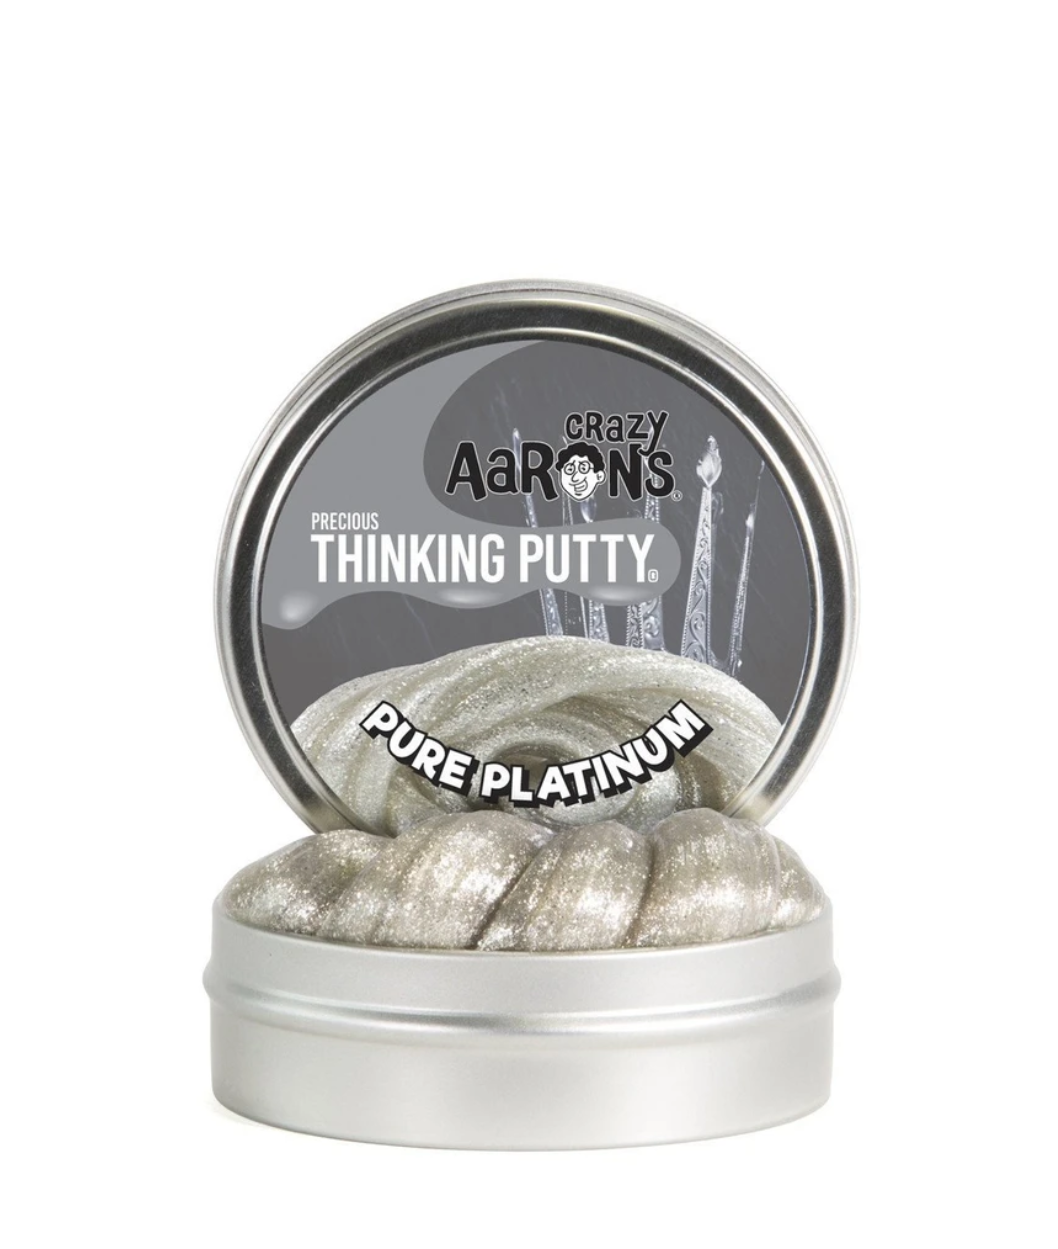 crazy aarons thinking putty  poppable tearable firm texture non-toxic silicon never dries out arctic pure platinum metal precious holographic glitter metallic silver